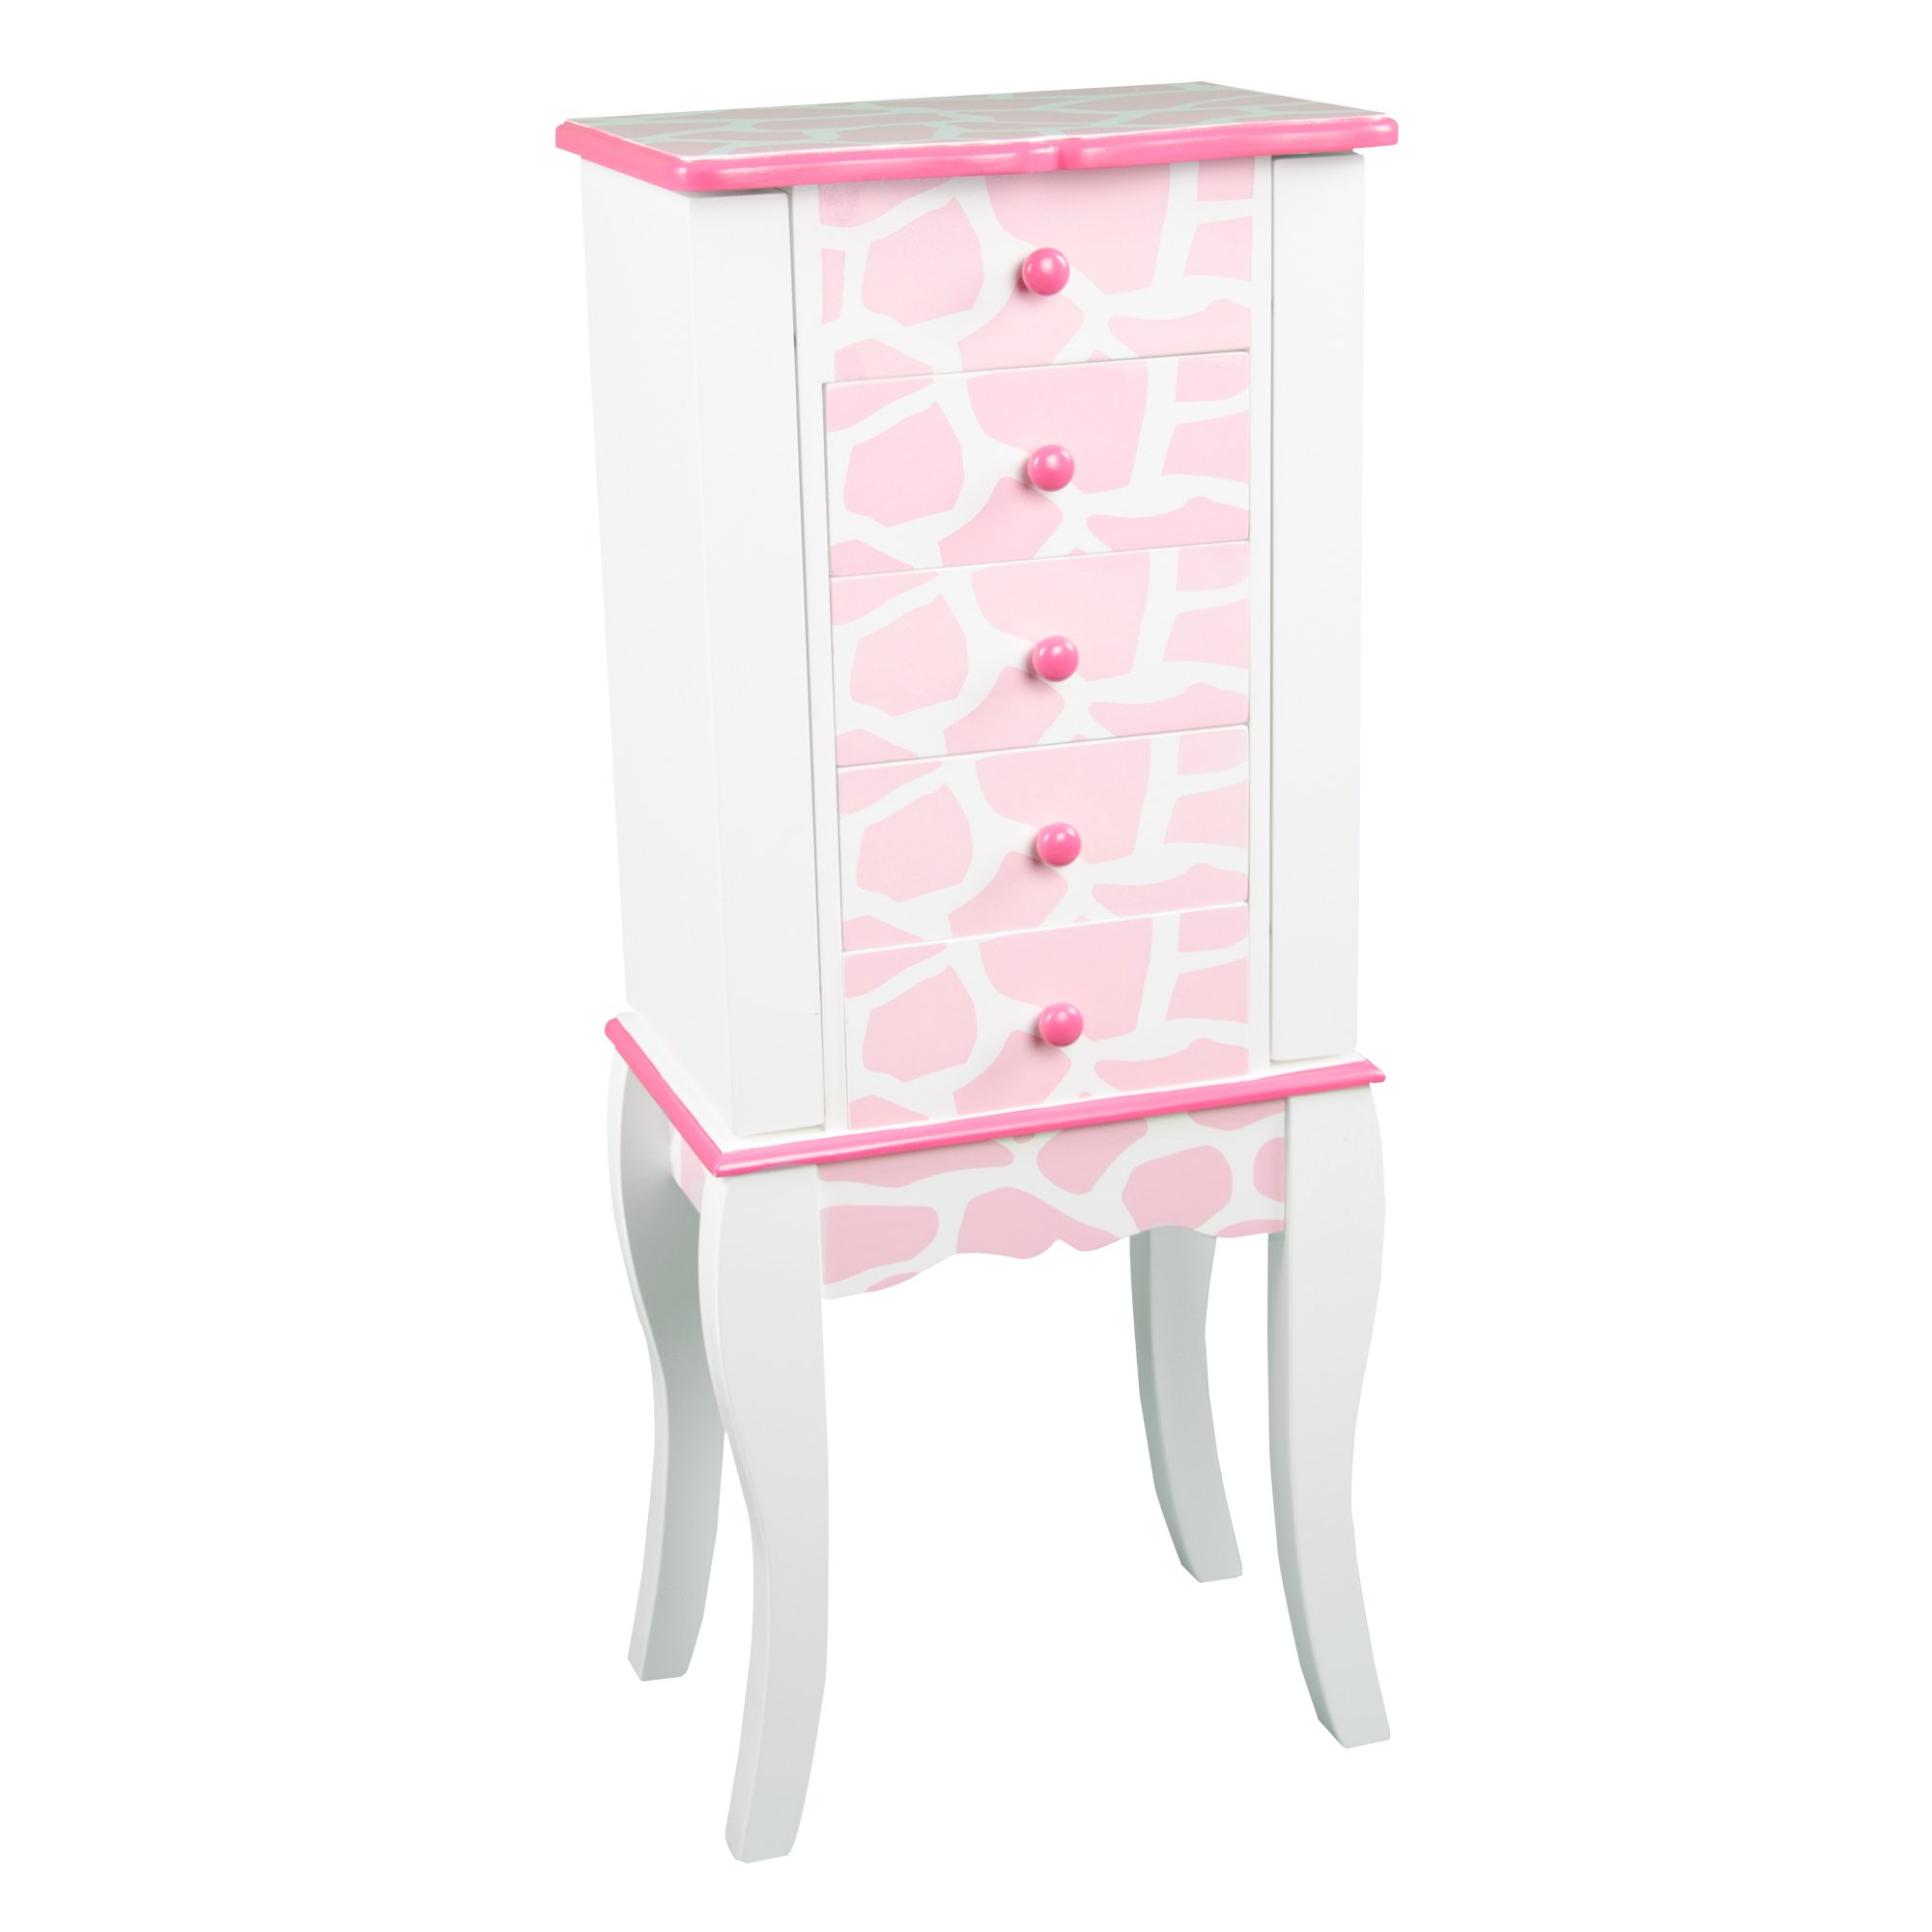 Teamson Kids - Fashion Prints Jewelry Armoire with Mirror 1 piece for Kids Giraffe (Baby Pink / White)